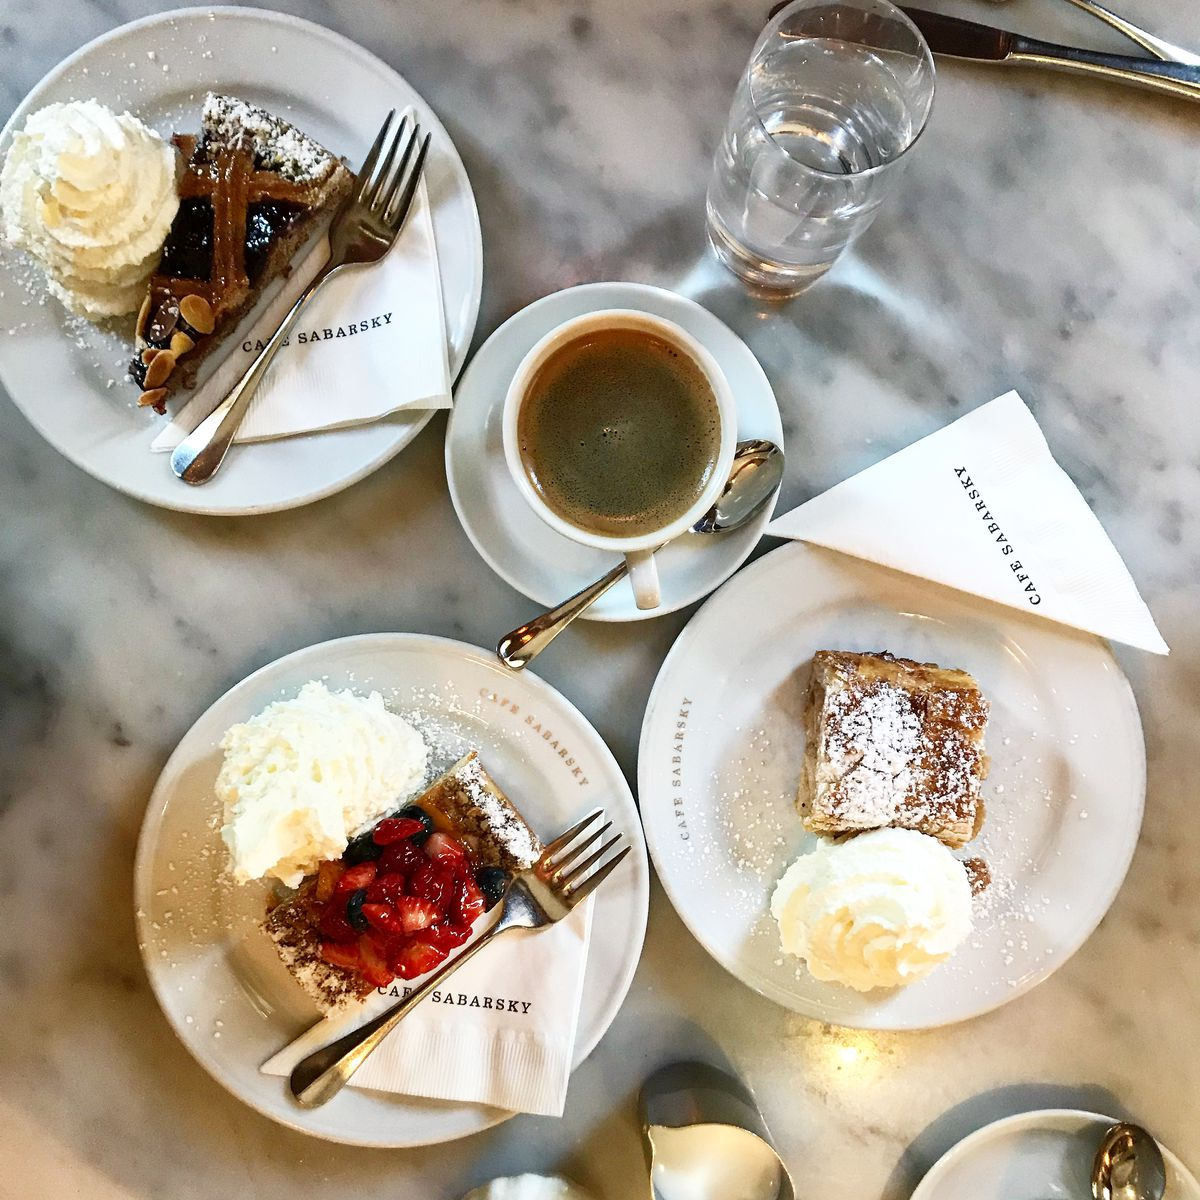 Pastries at Cafe Sabarsky